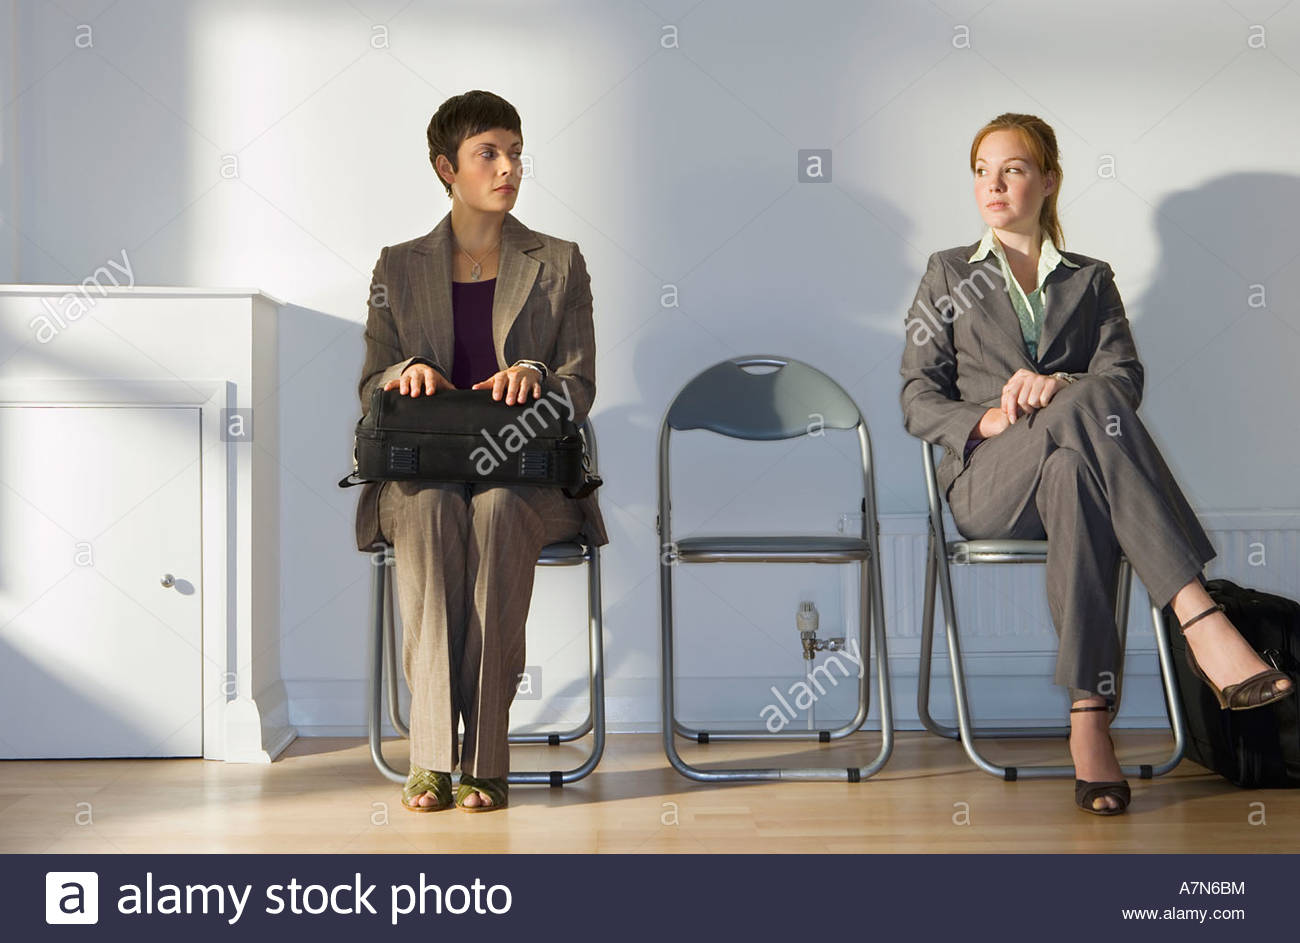 Two businesswomen sitting in office reception area waiting patiently front view - Stock Image